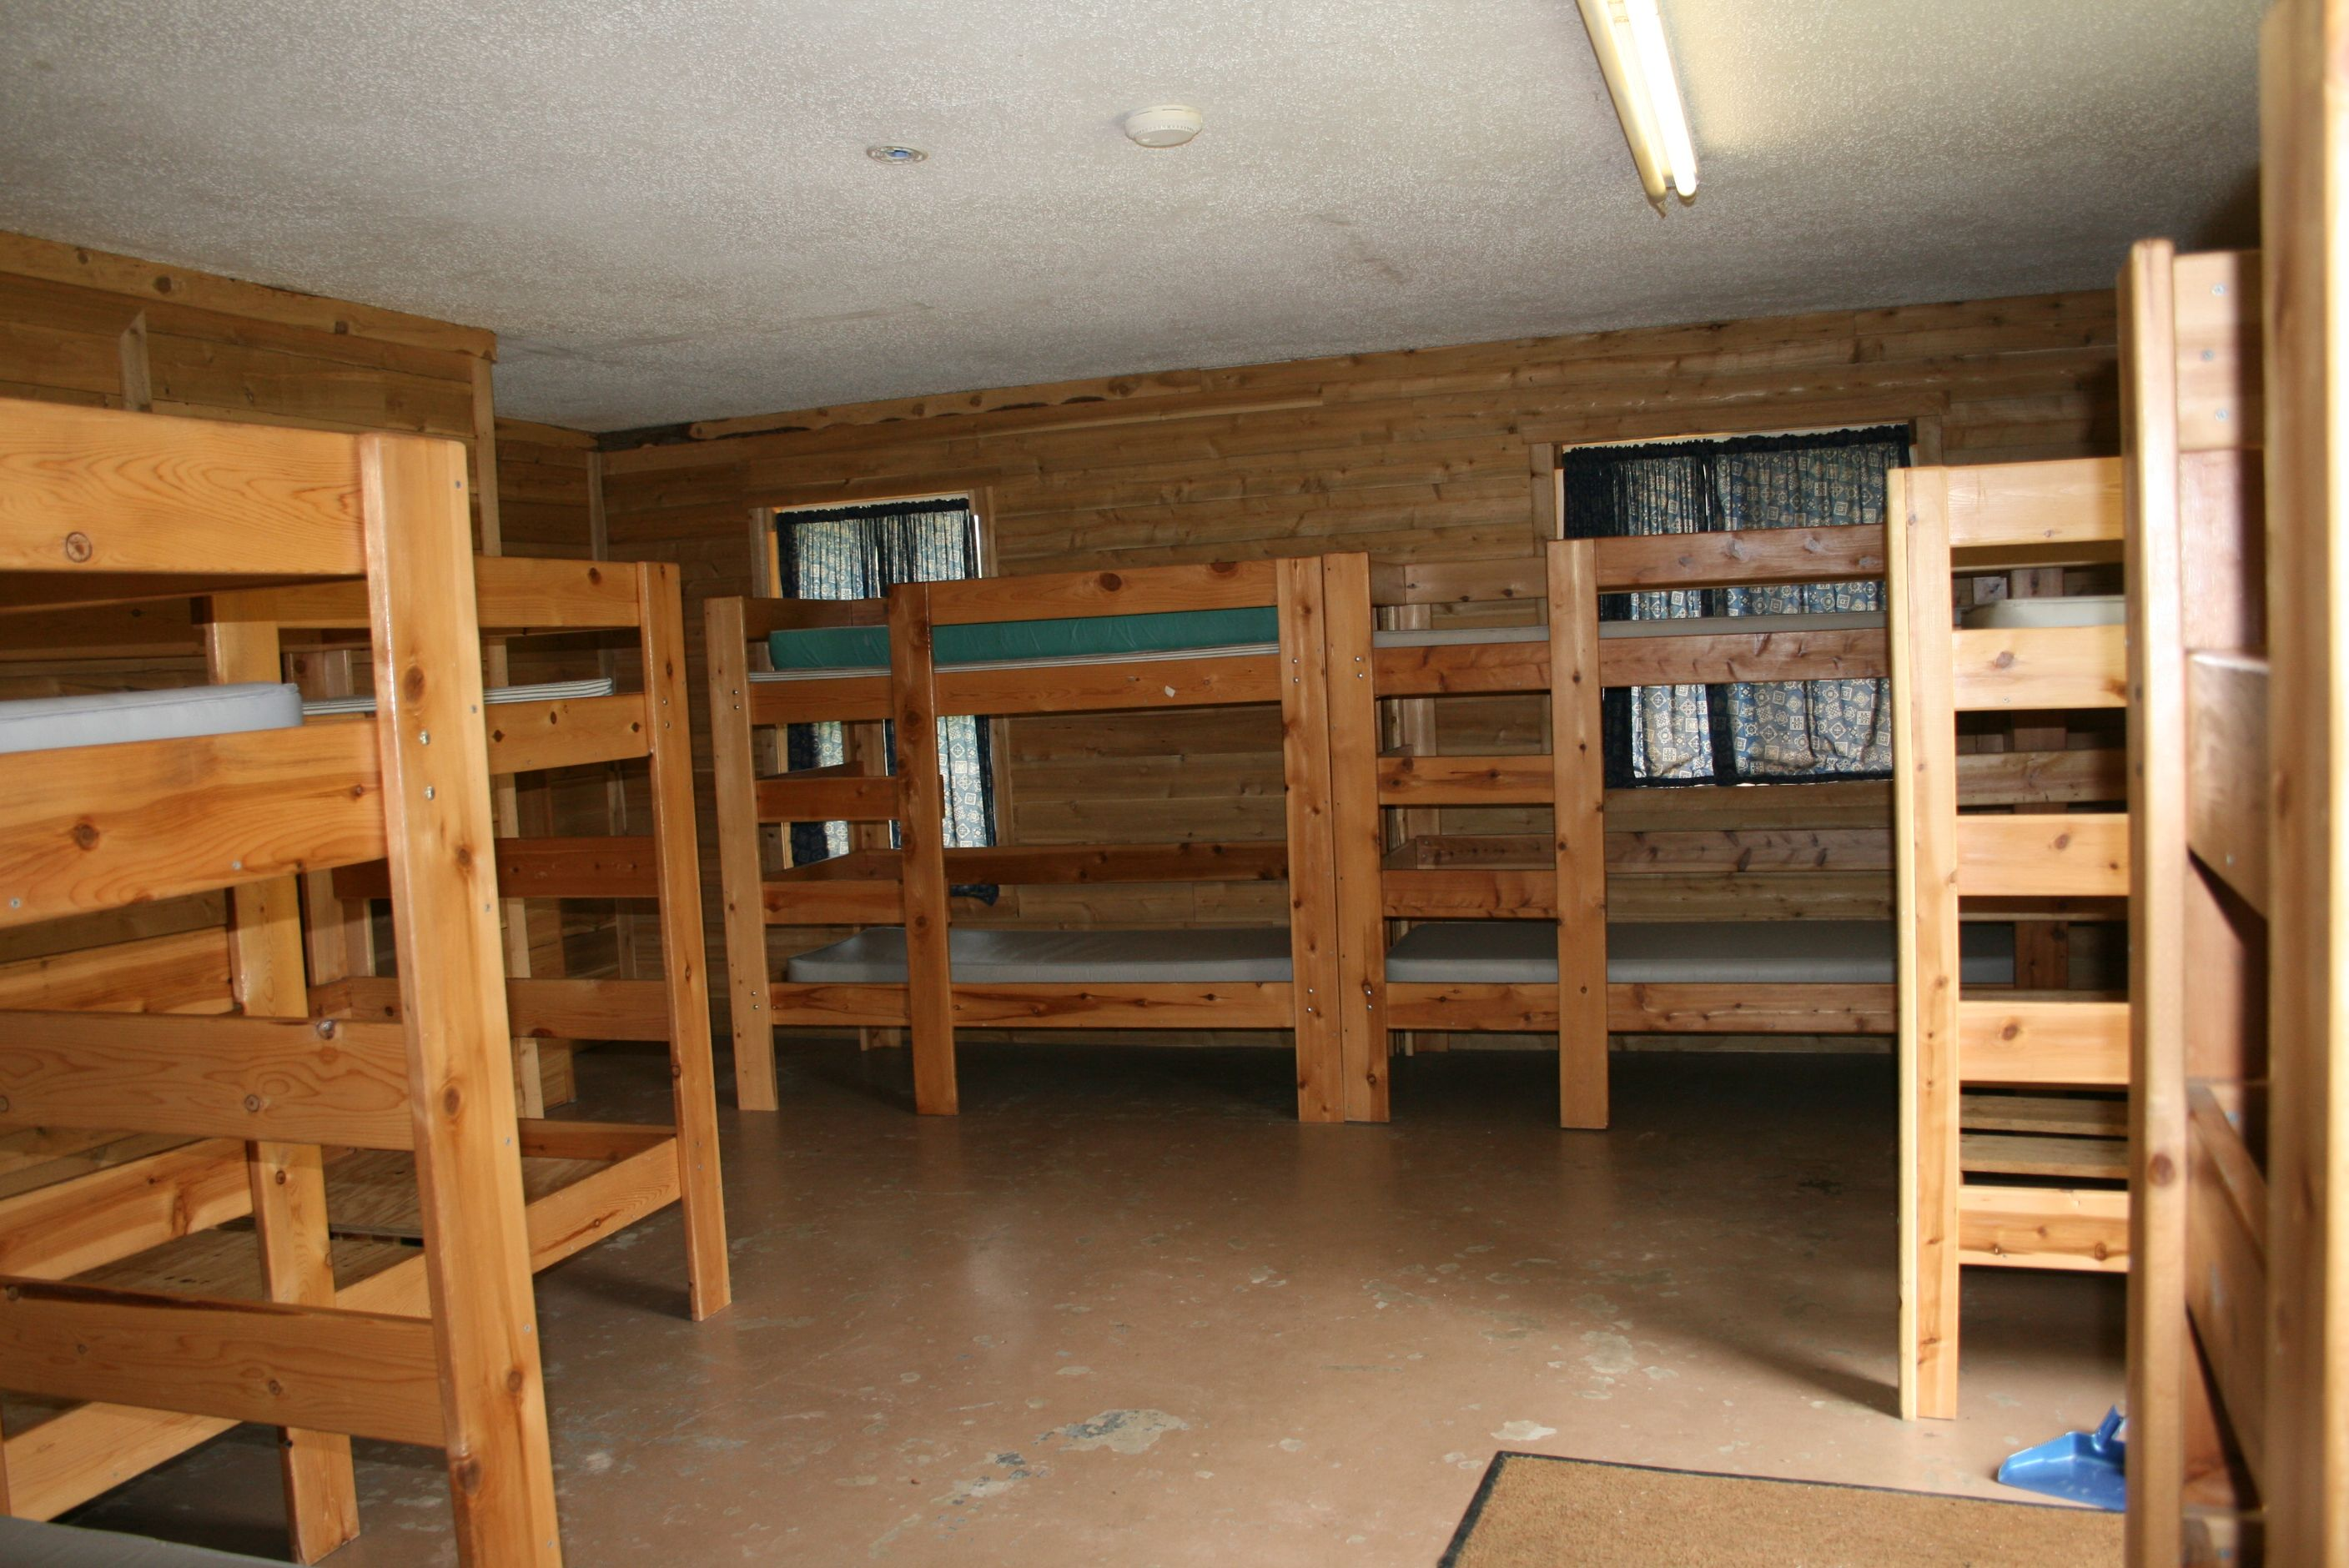 Summer Camp Bunk Beds Google Search Minimalist House Design